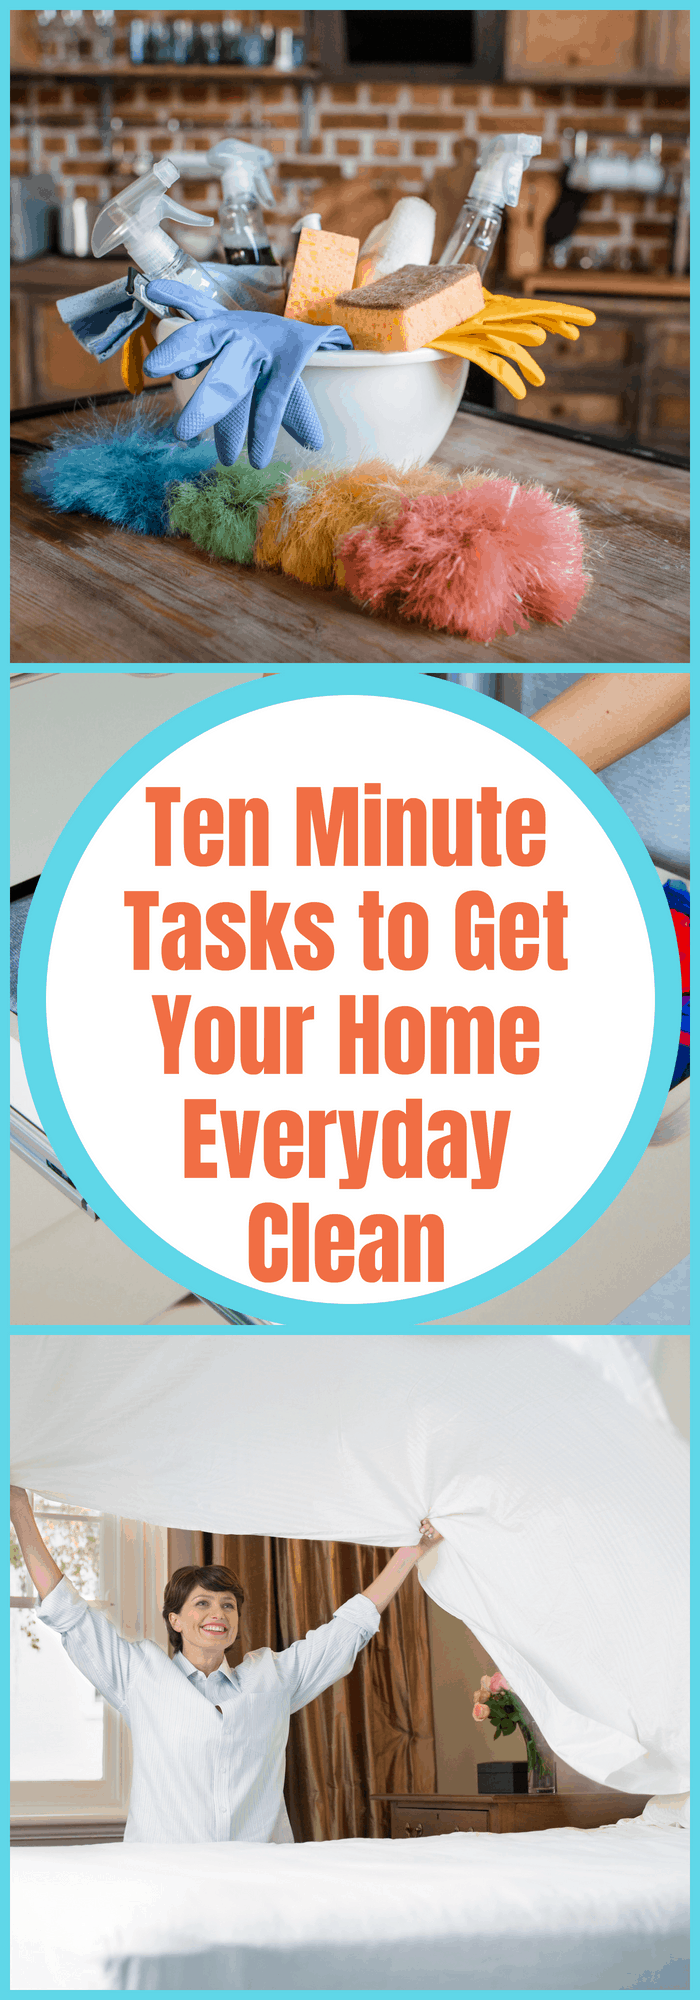 Ten Minute Tasks to Get Your Home Everyday Clean